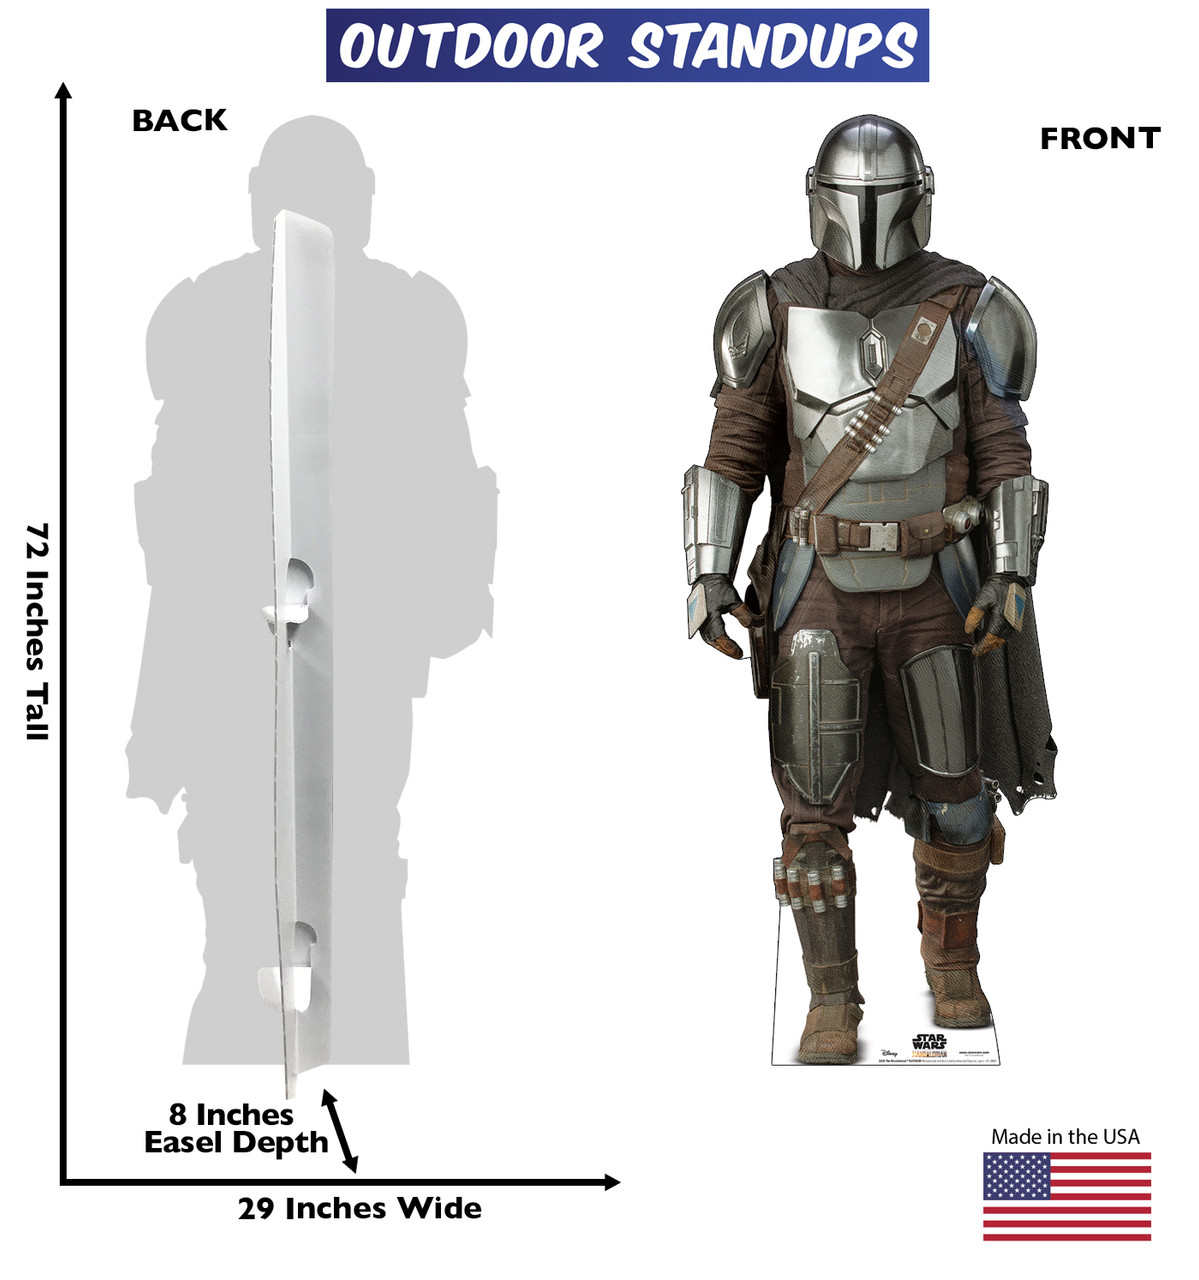 Life-size cardboard standee of The Mandalorian Outdoor with back and front dimensions.